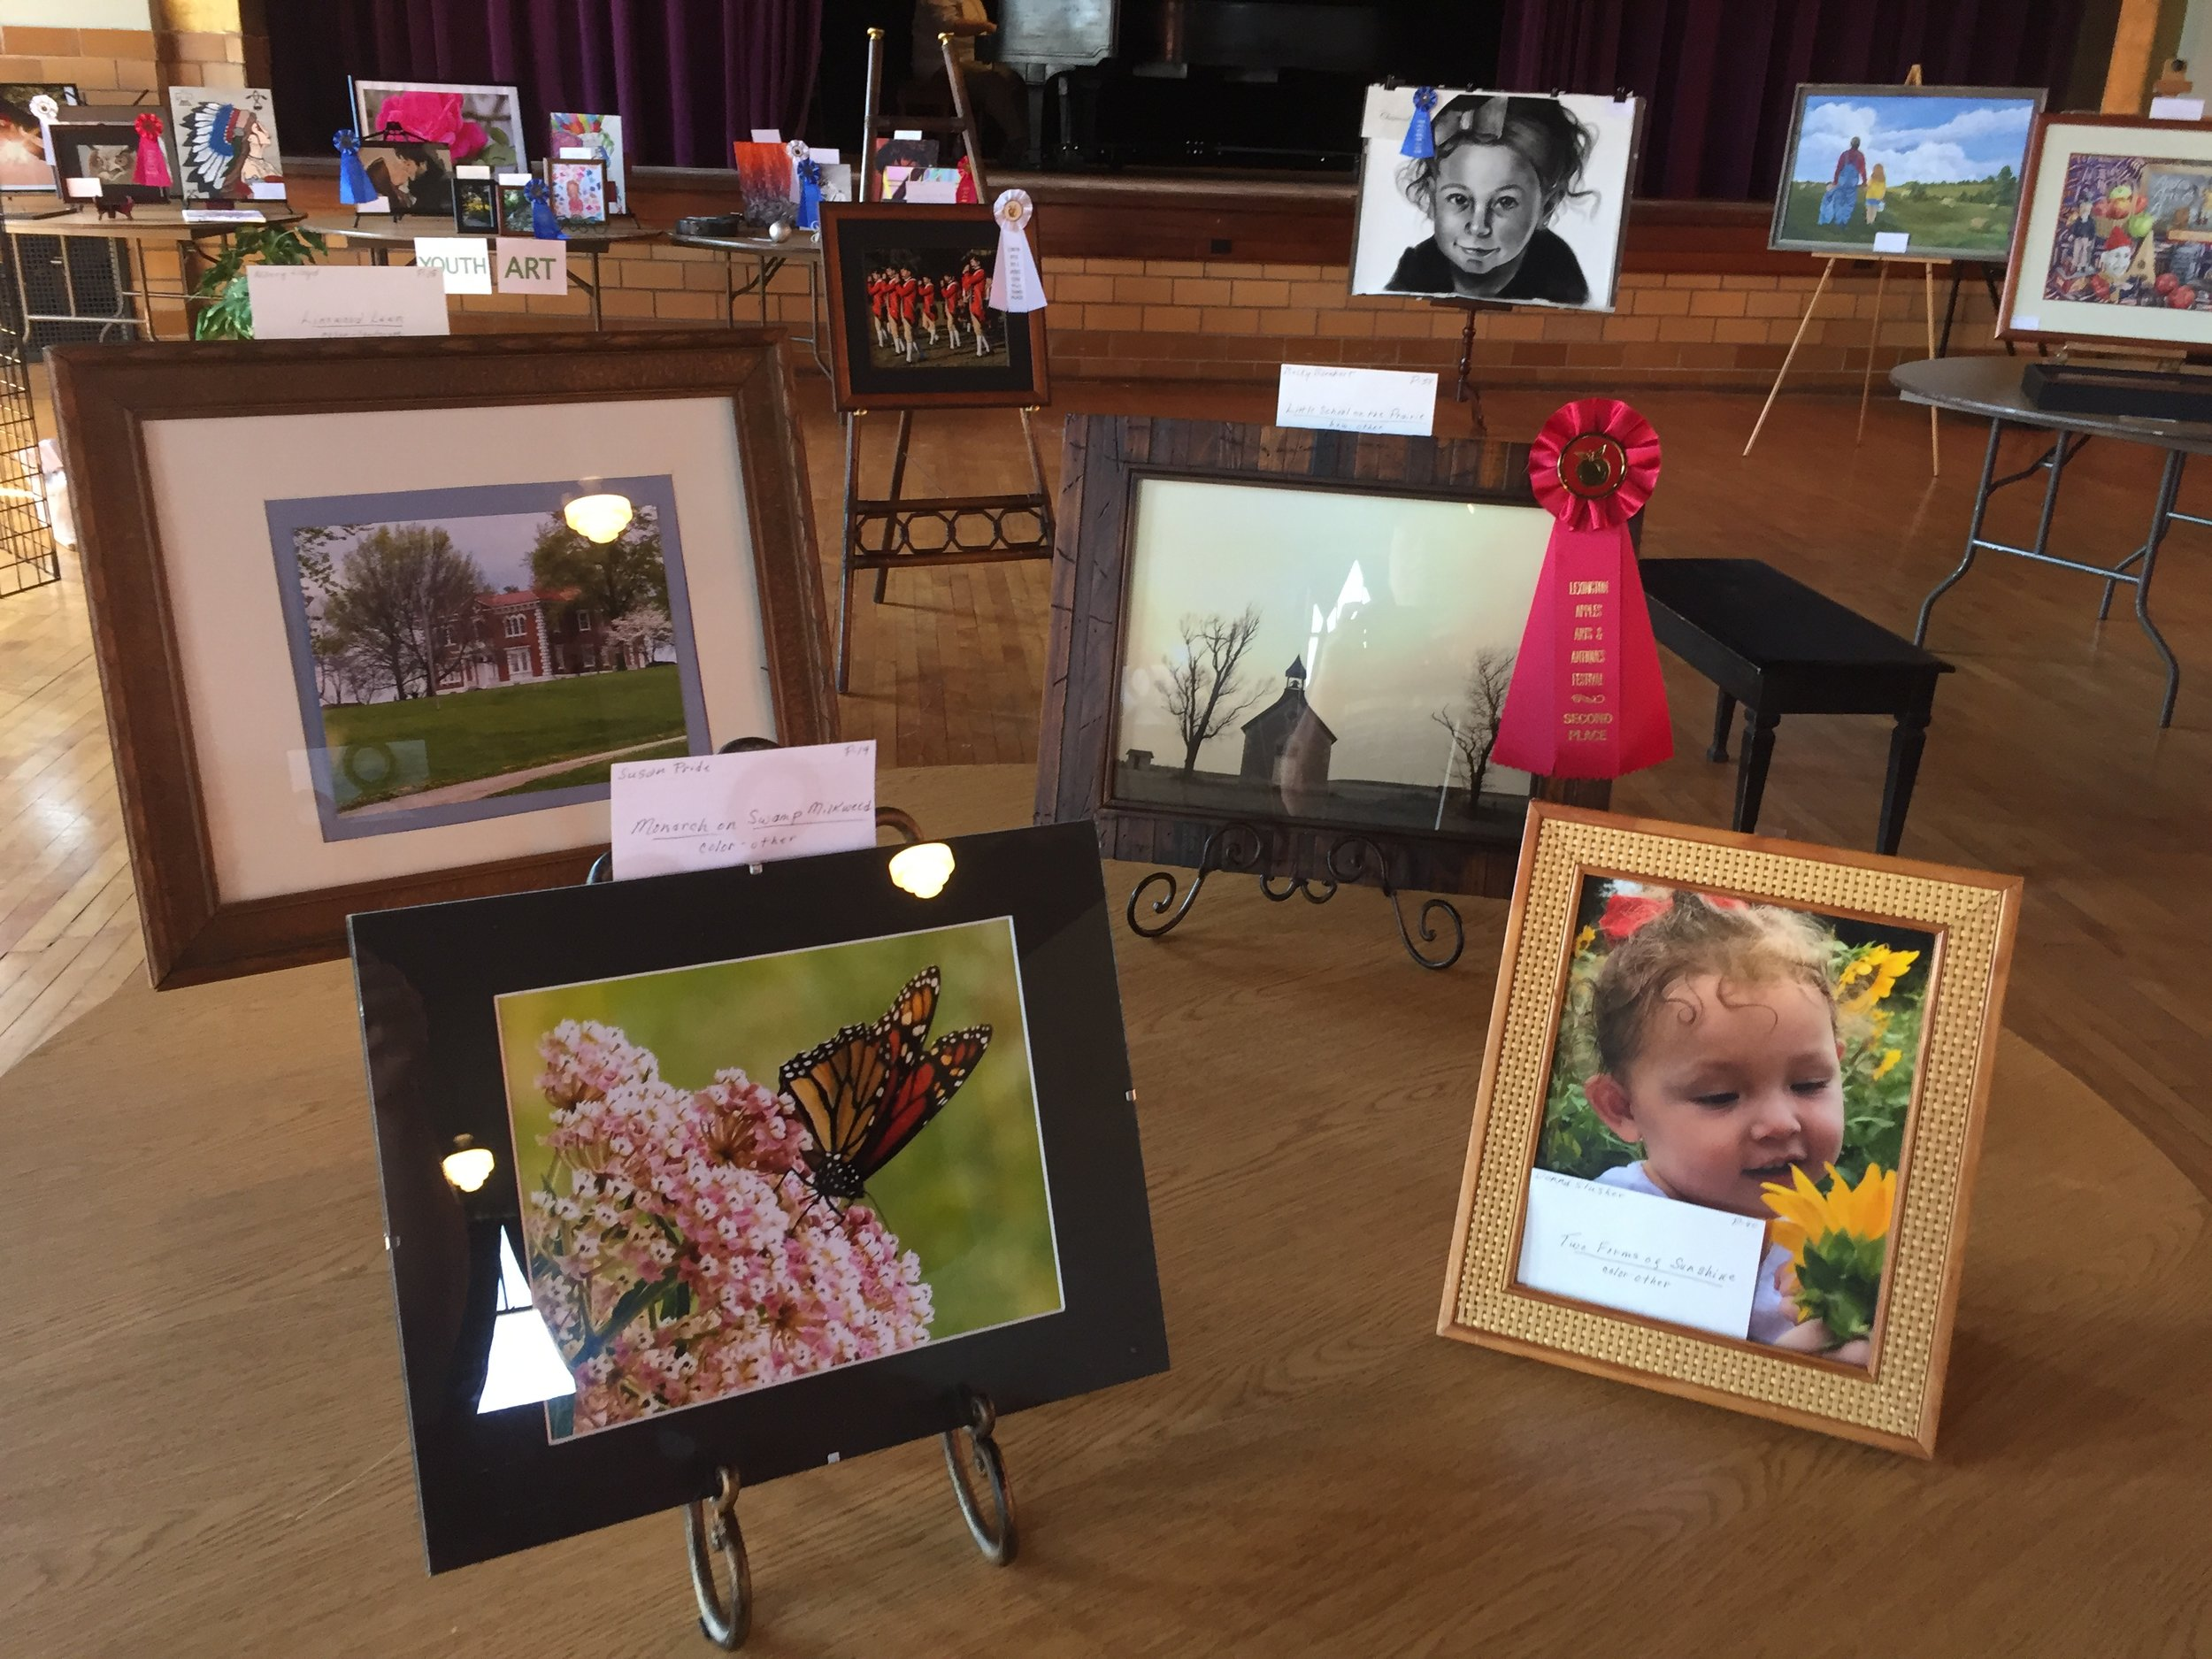 Annual Art Show, 2017. With over 90 contestants, the beautiful art was on display at The Lex Auditorium. We also included a youth art show. Hosted by the arts council, we brought in a judge and awarded first through third place prizes.